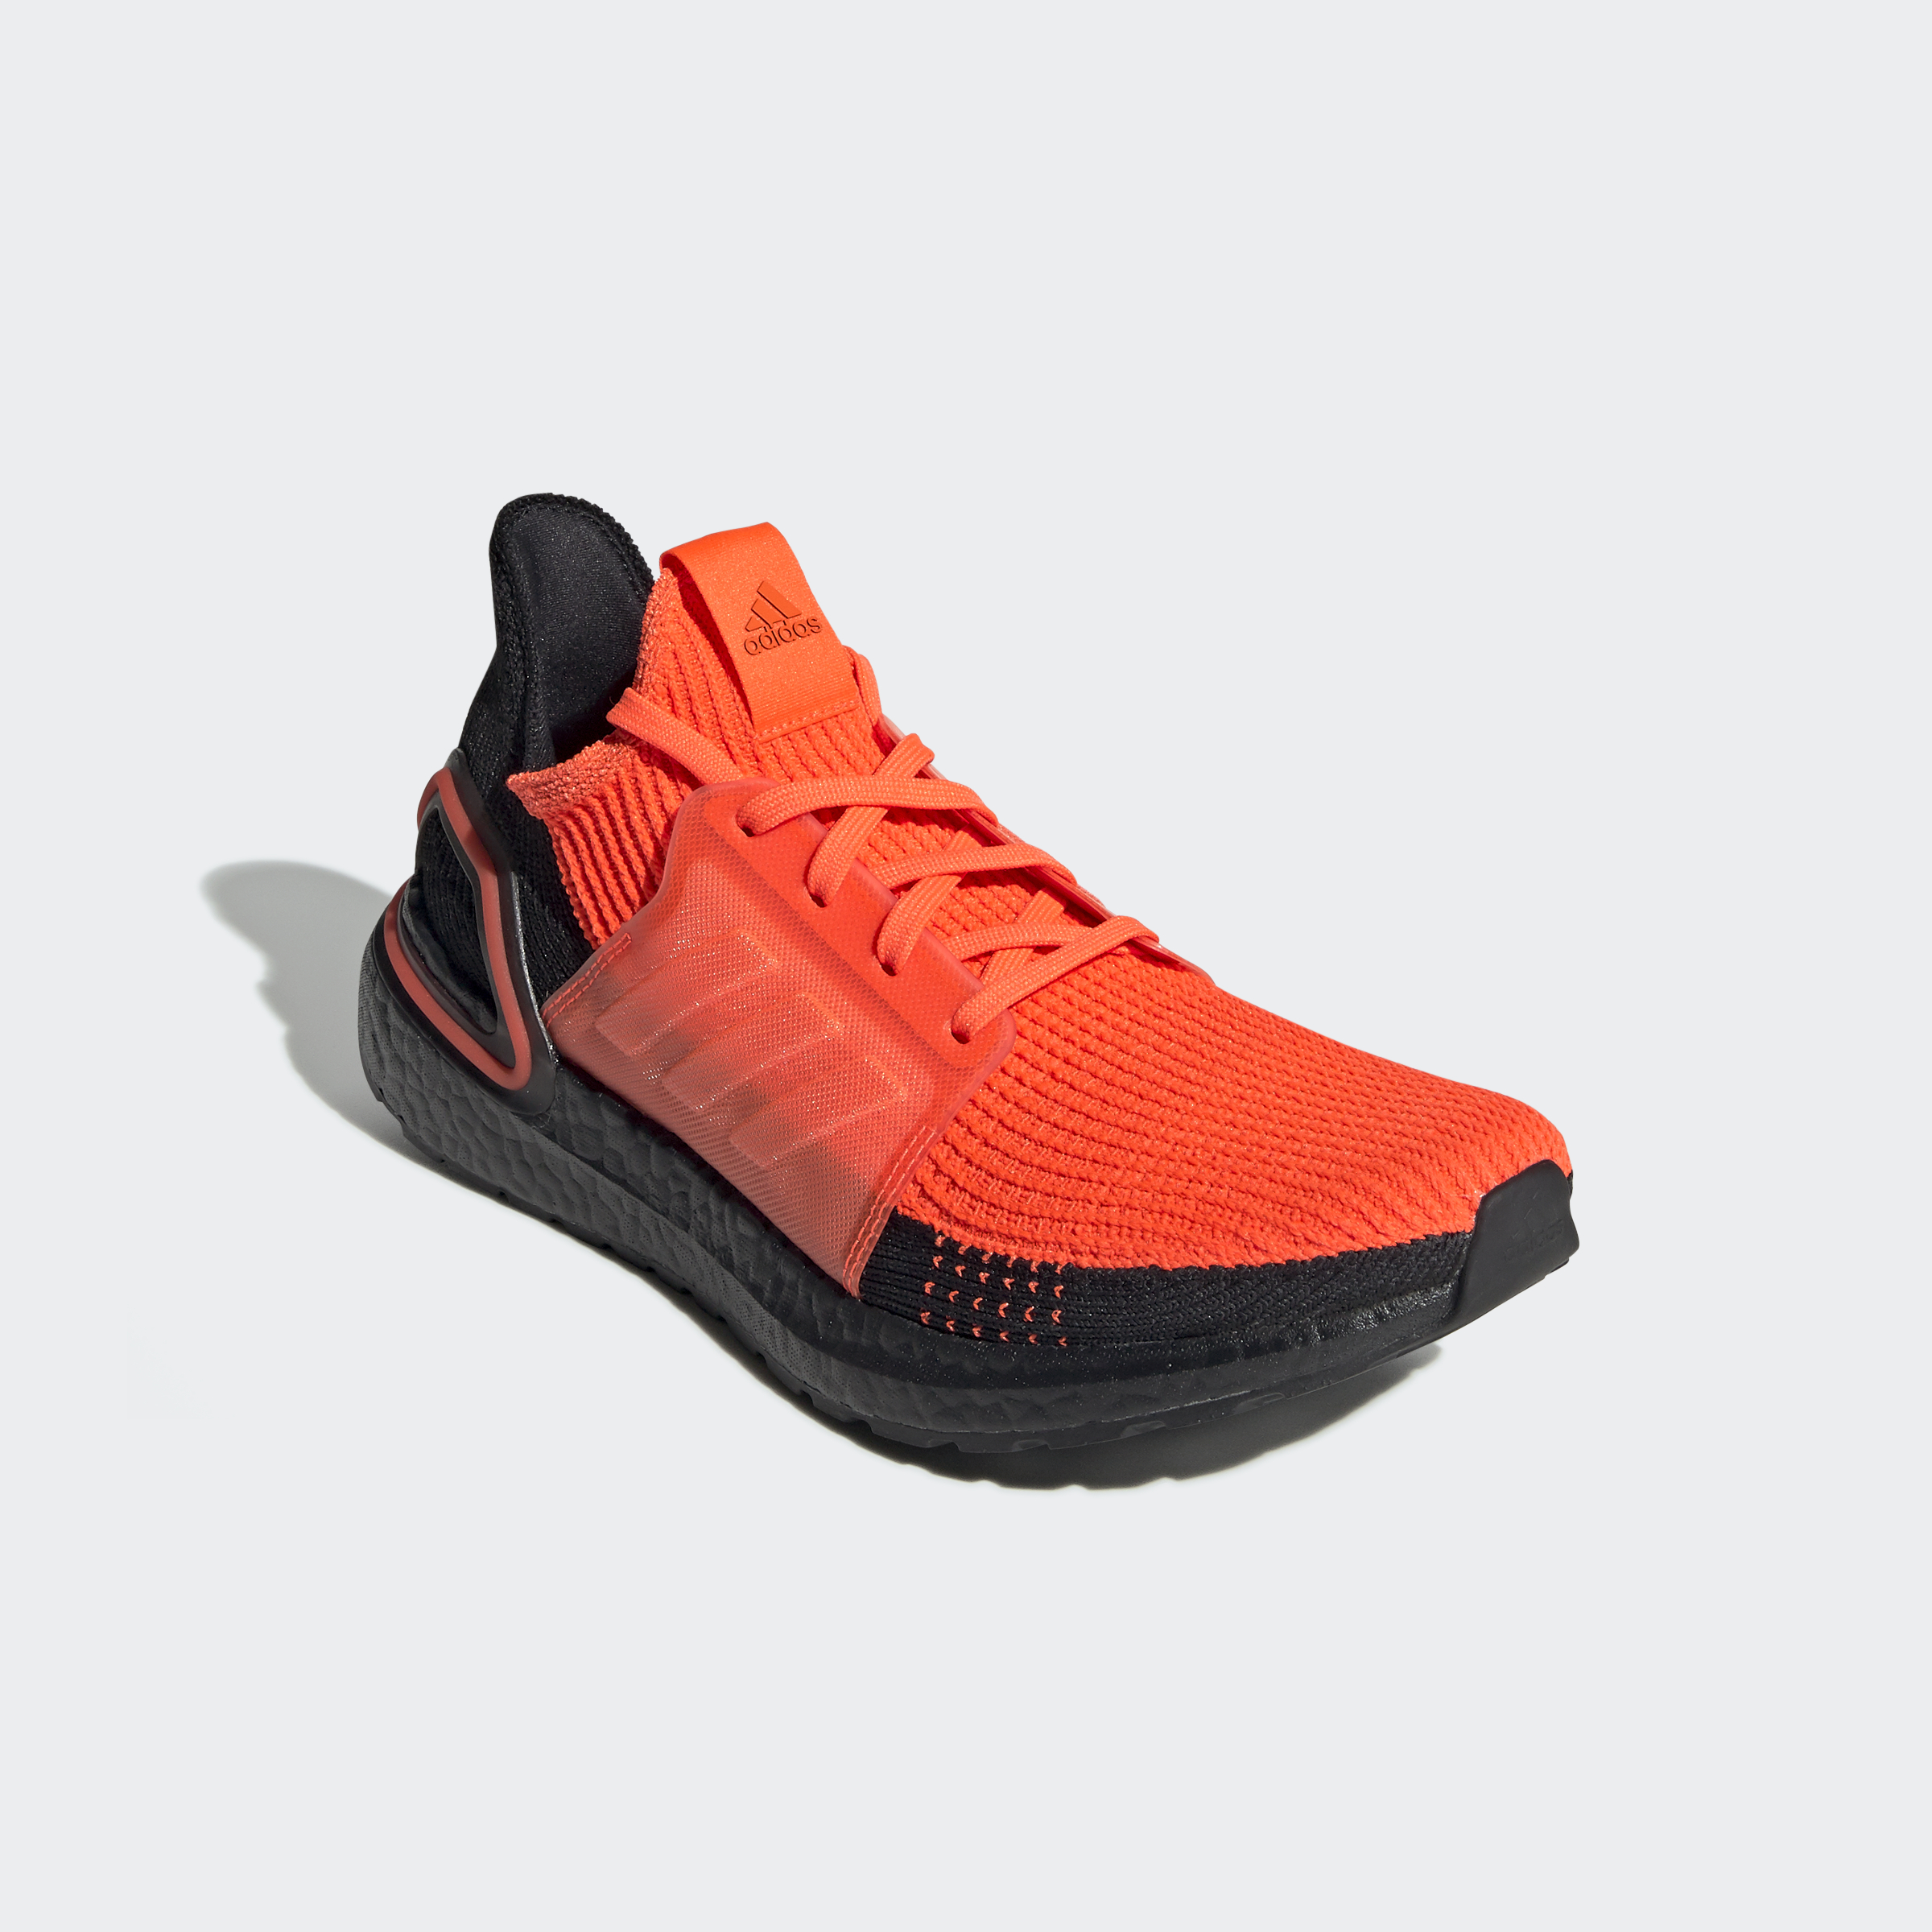 adidas-Ultraboost-19-Shoes-Athletic-amp-Sneakers thumbnail 52